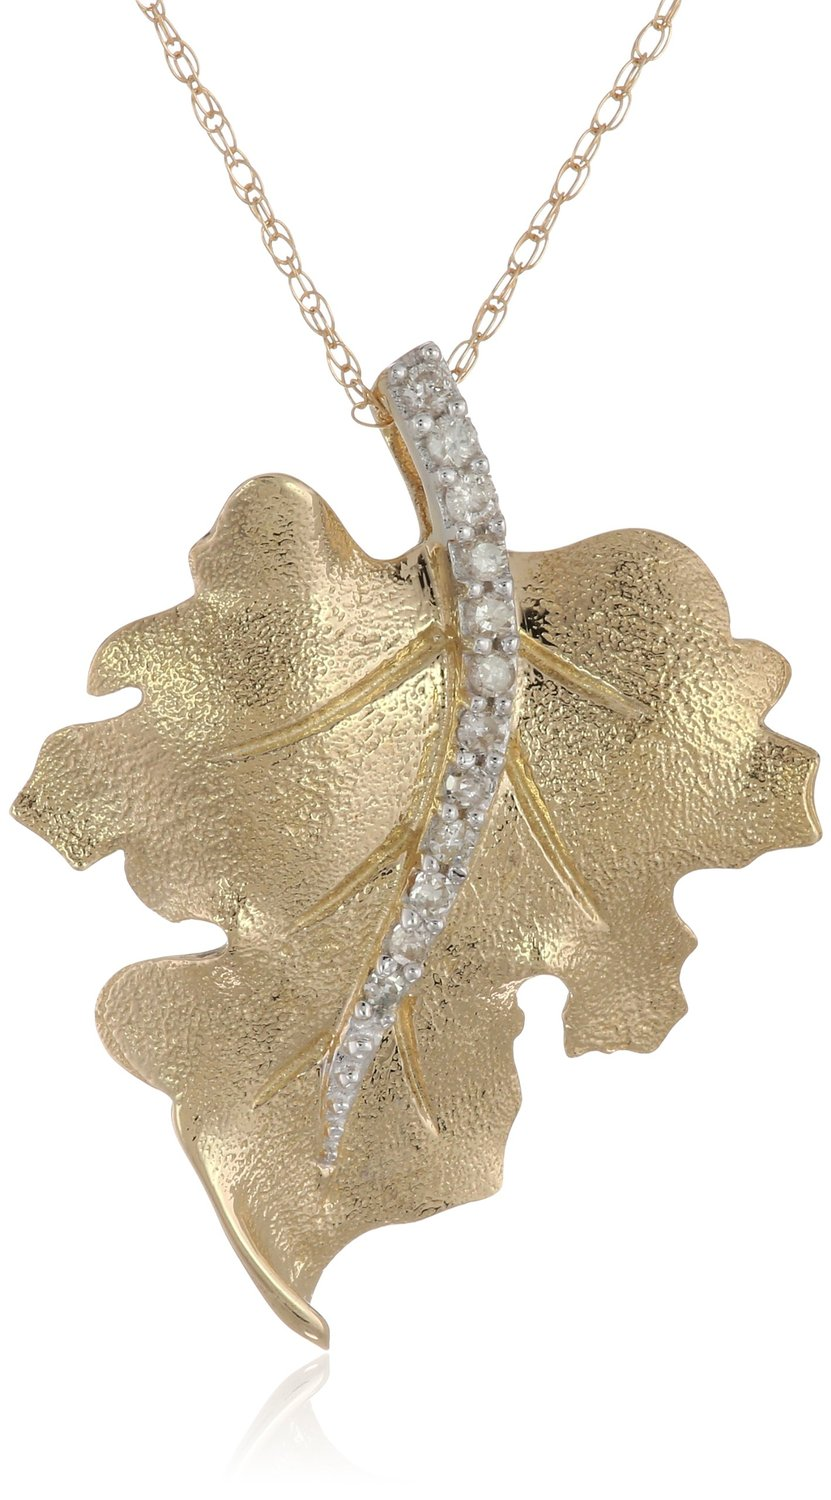 Wholesale Price 18K Solid Yellow Gold Filled/Plated Cuban